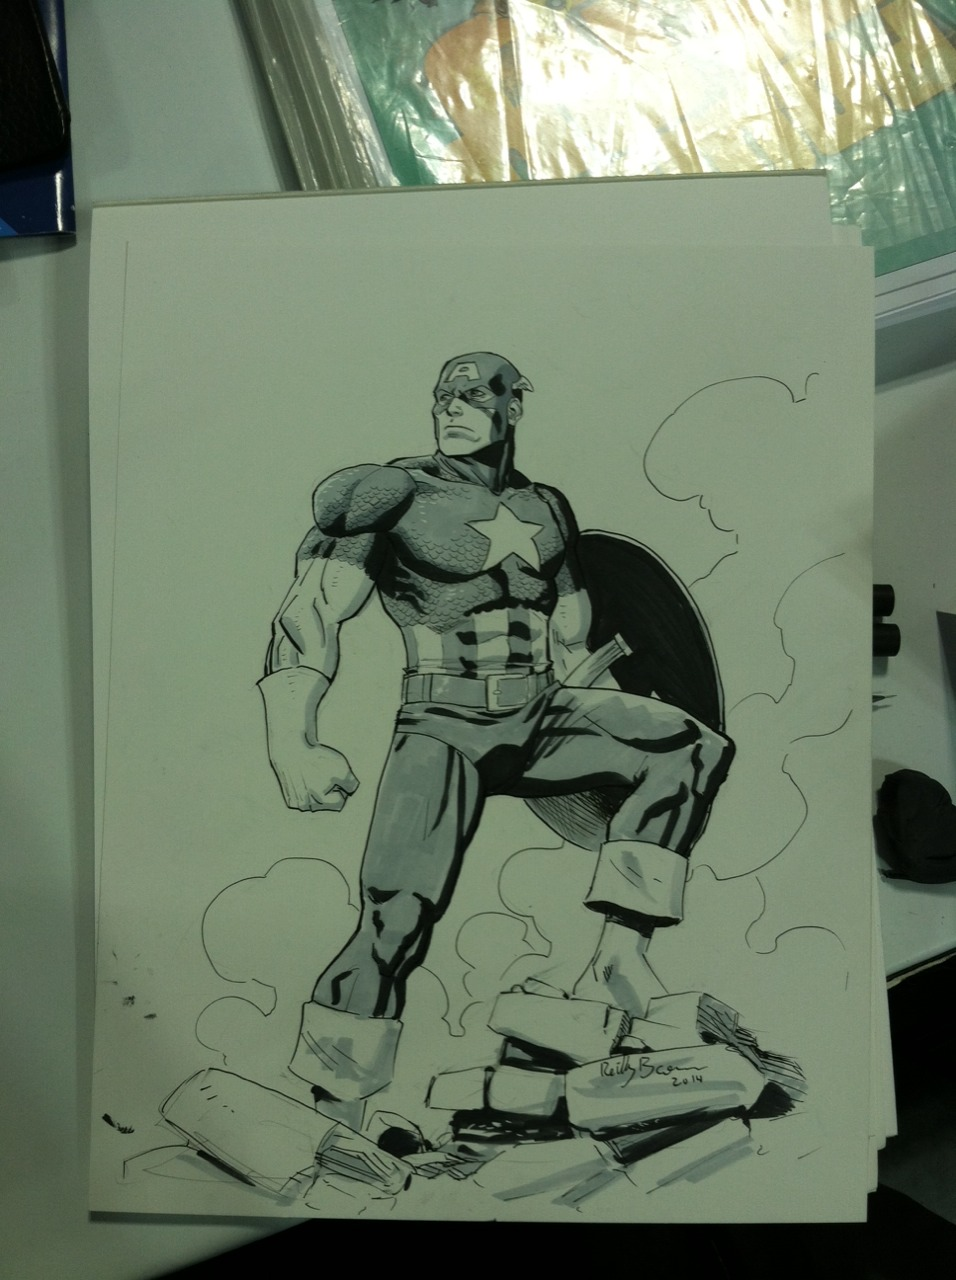 Captain America commission from Special Edition NYC.